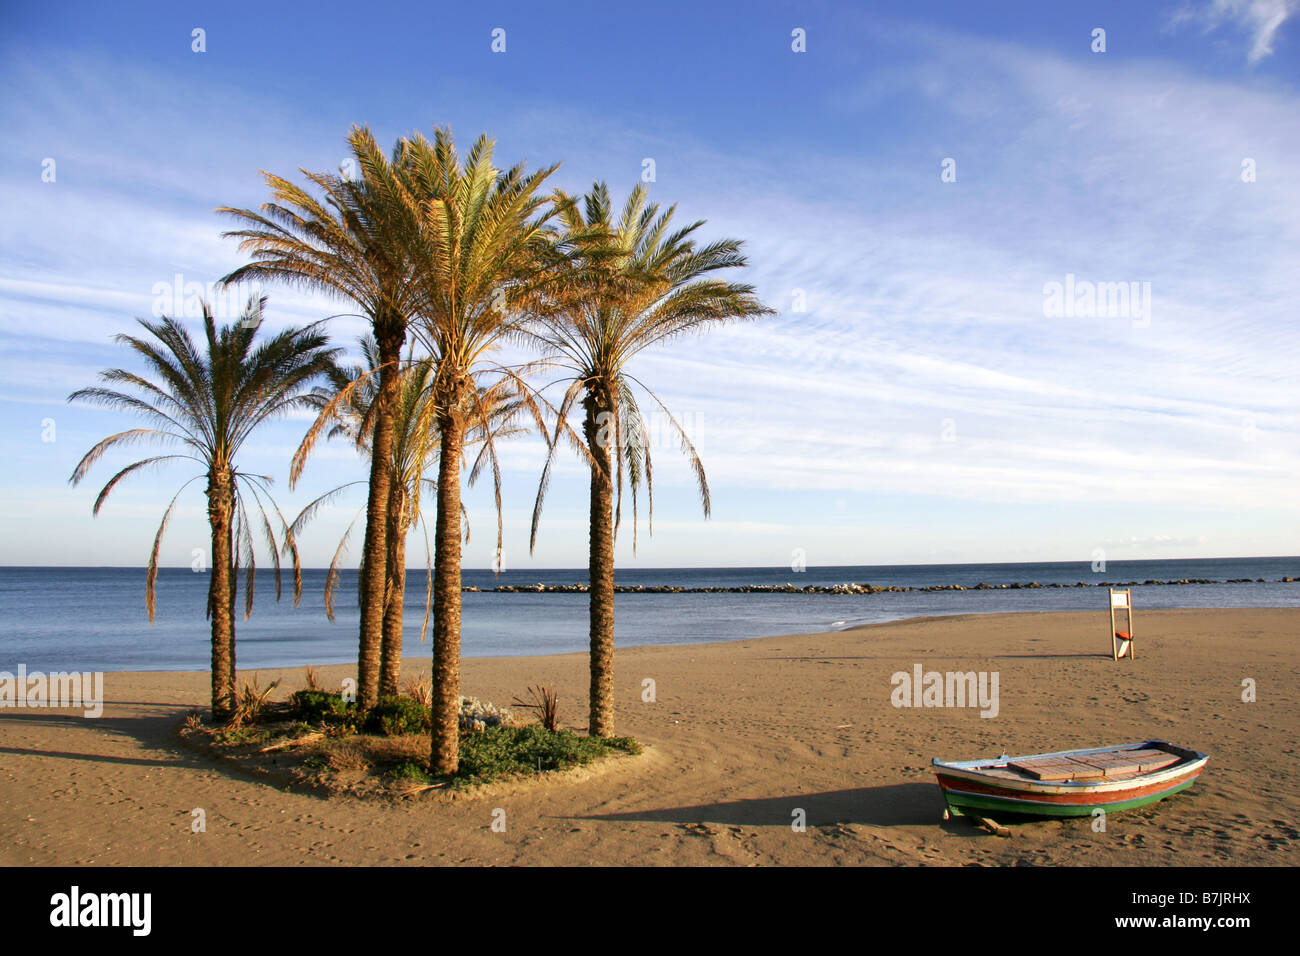 Wooden boat and palm trees on the beach at Benalmadina Costa Del Sol Malaga Andalucia Spain - Stock Image